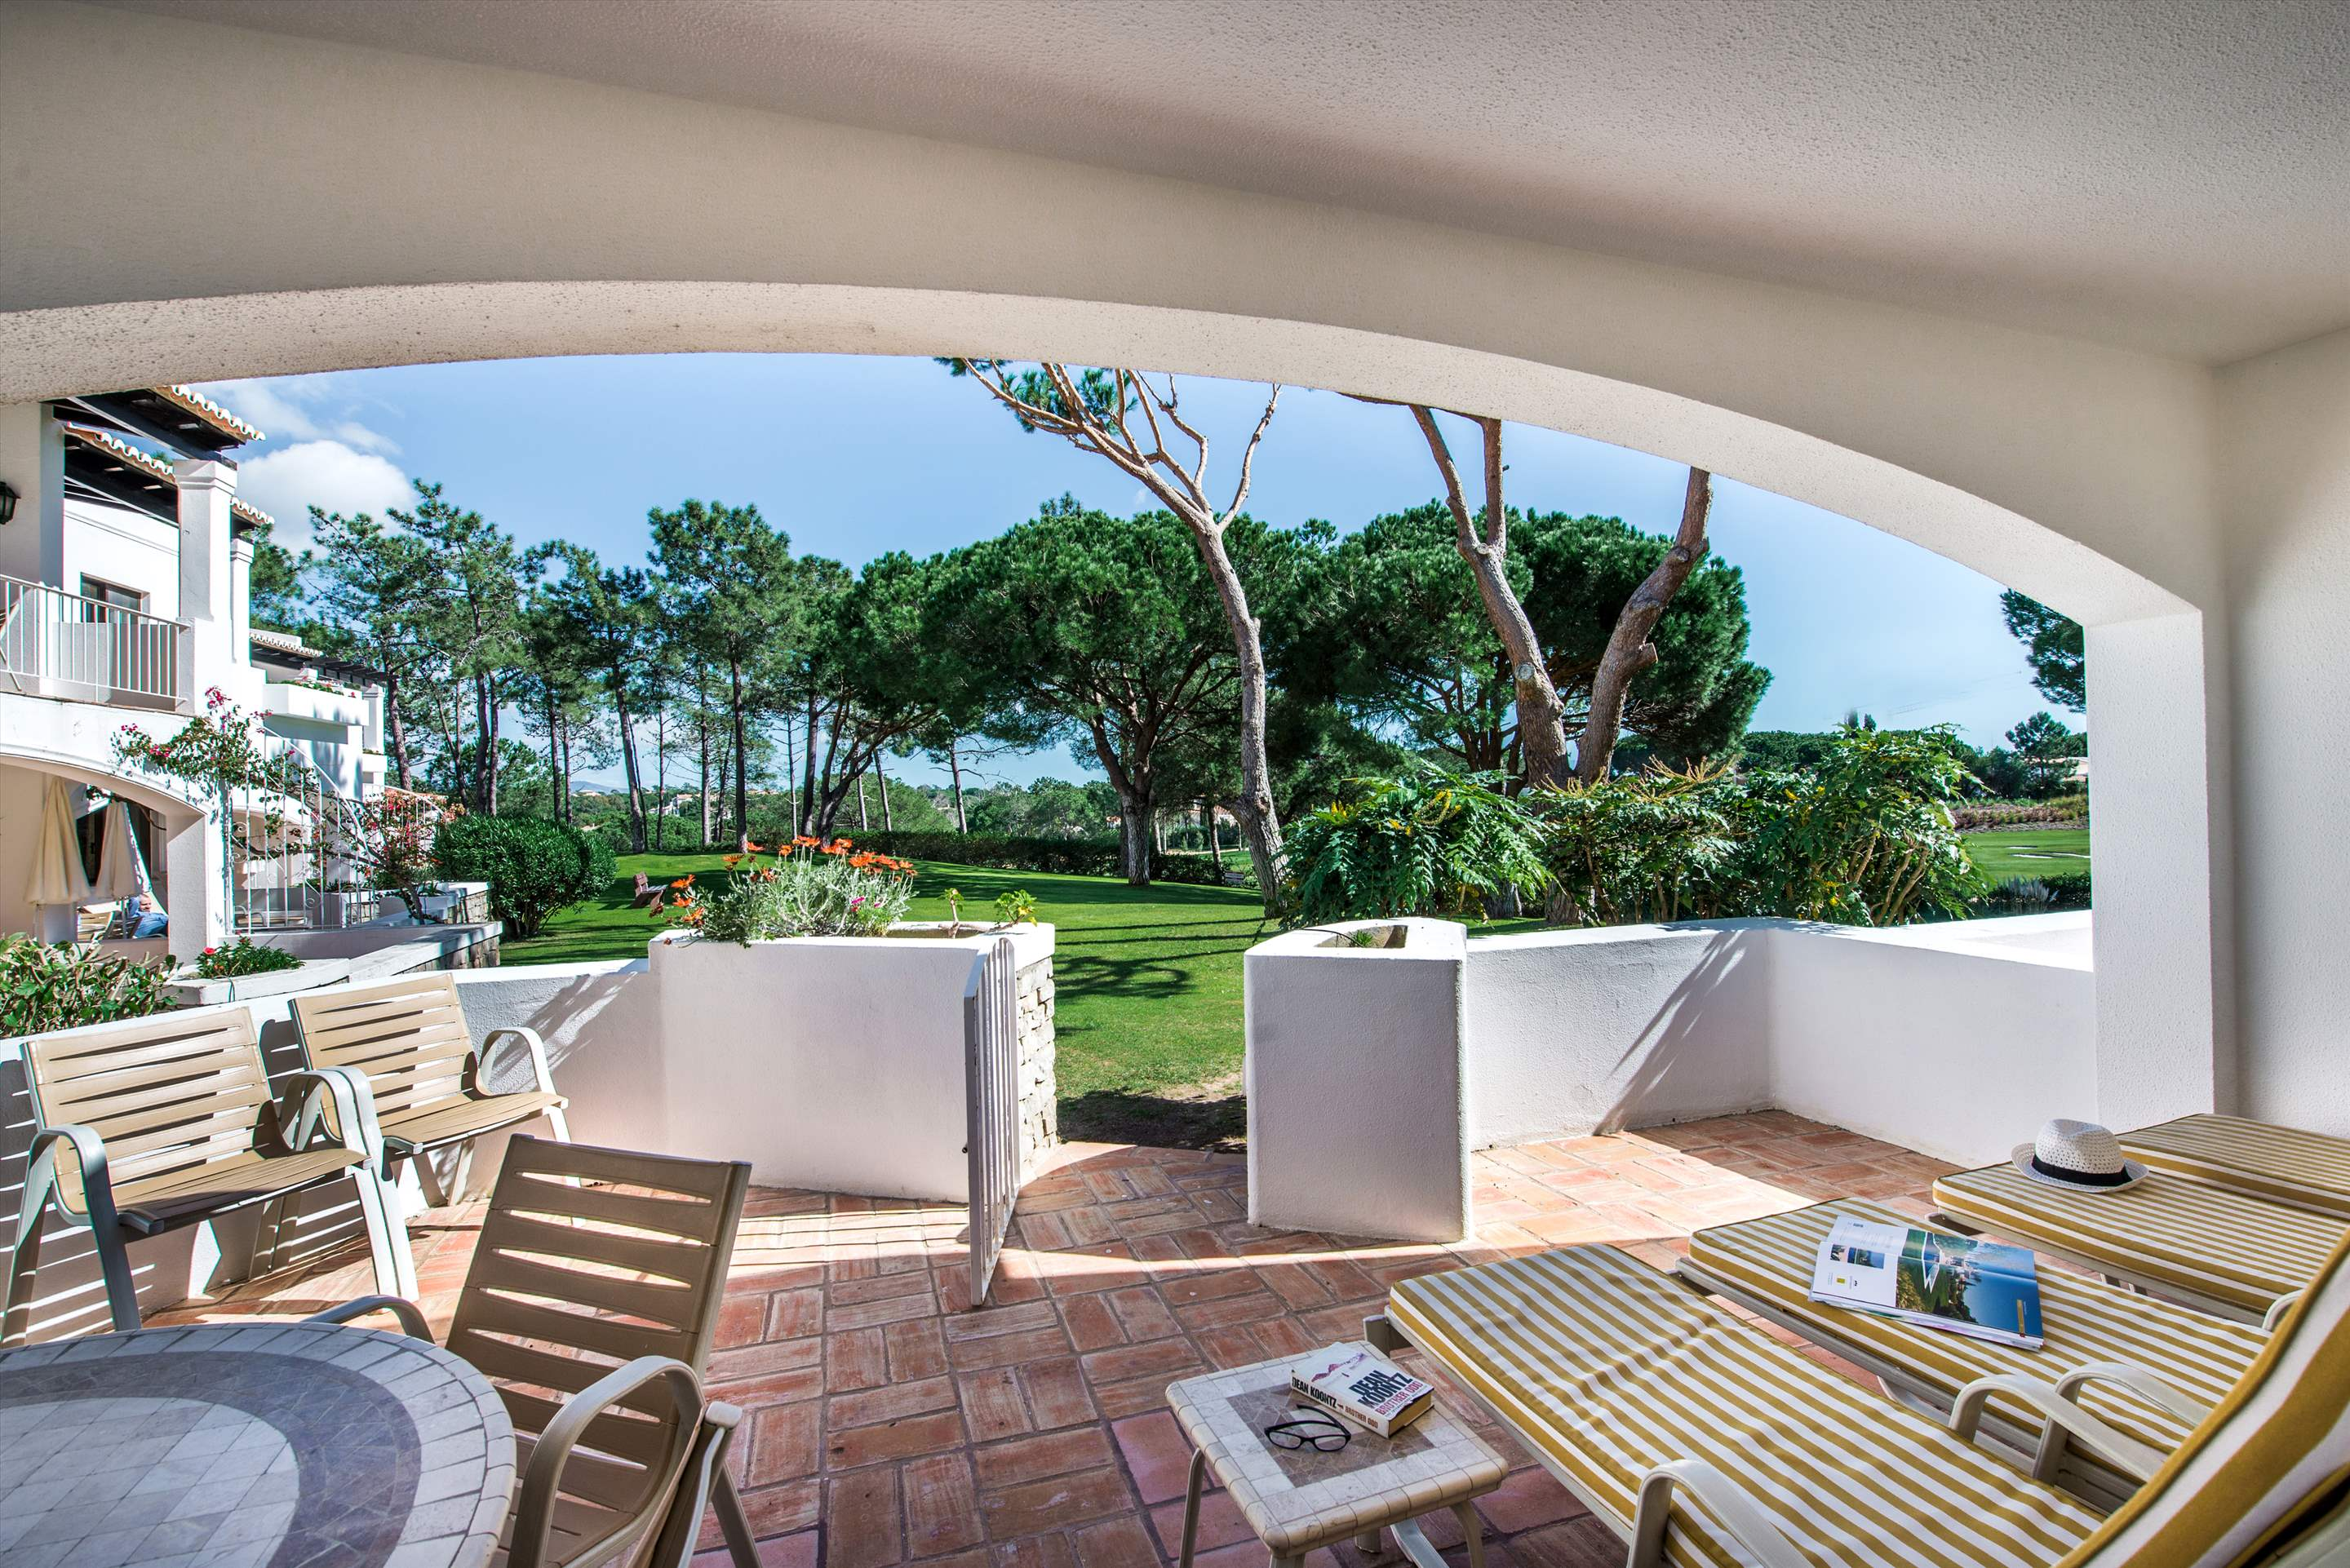 Four Seasons Country Club 1 bed, Superior - Saturday Arrival, 1 bedroom apartment in Four Seasons Country Club, Algarve Photo #10